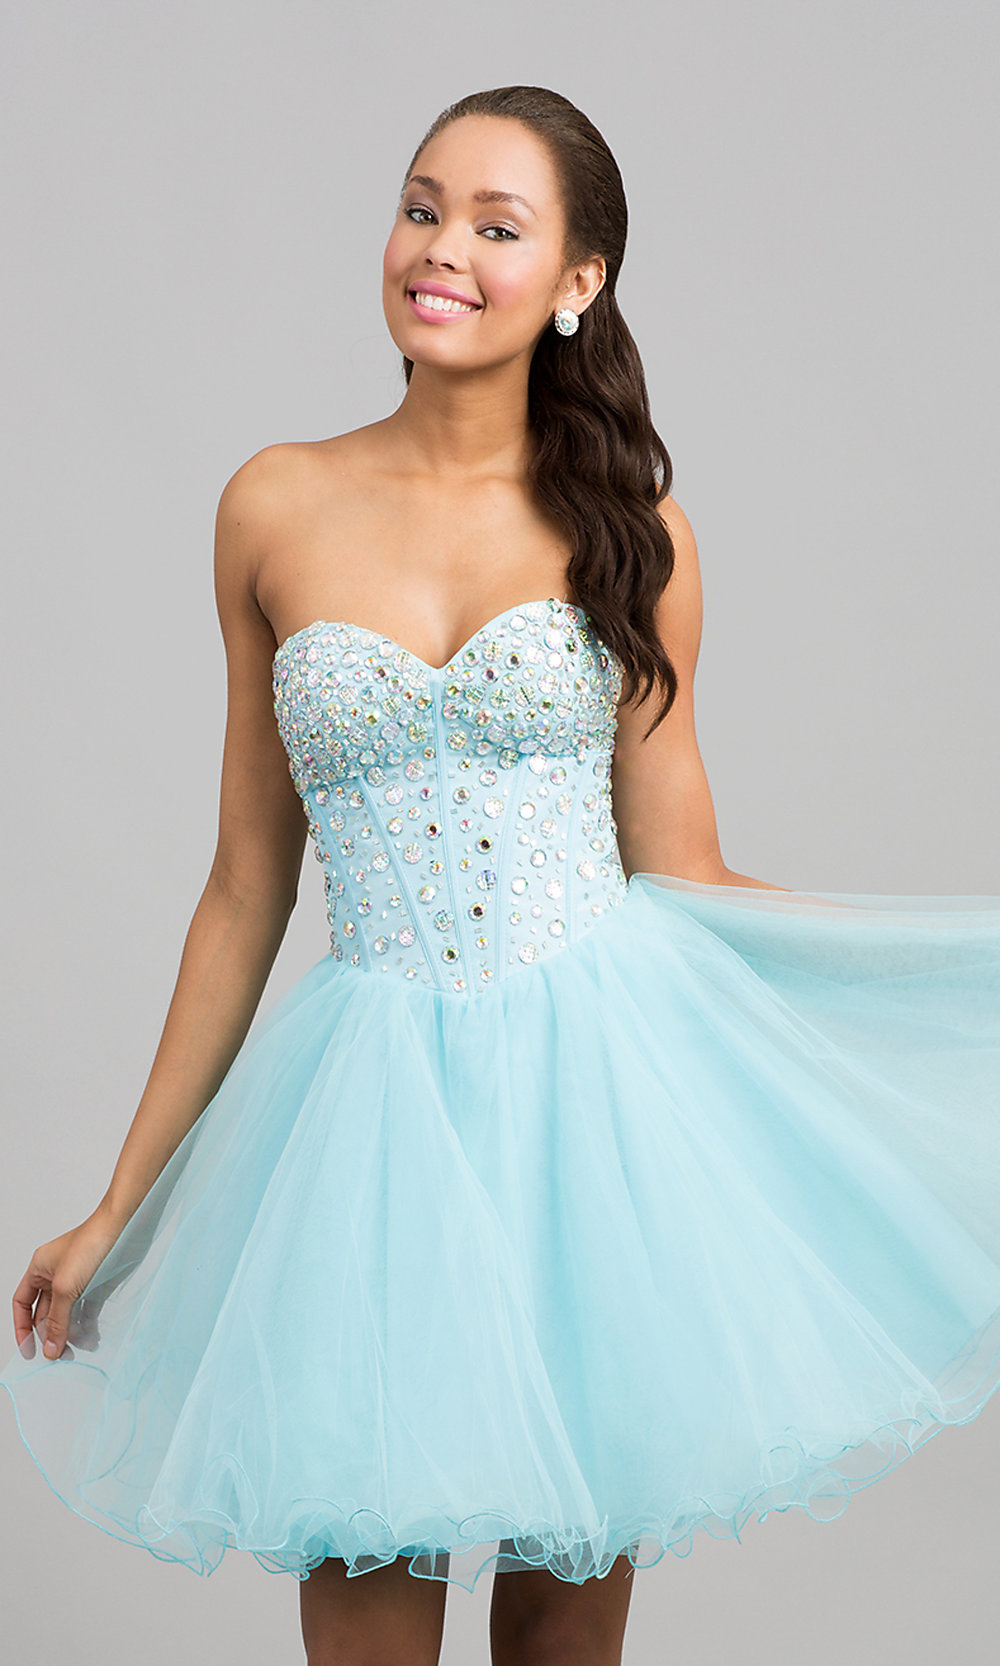 Short A-line Short Prom Corset Dress